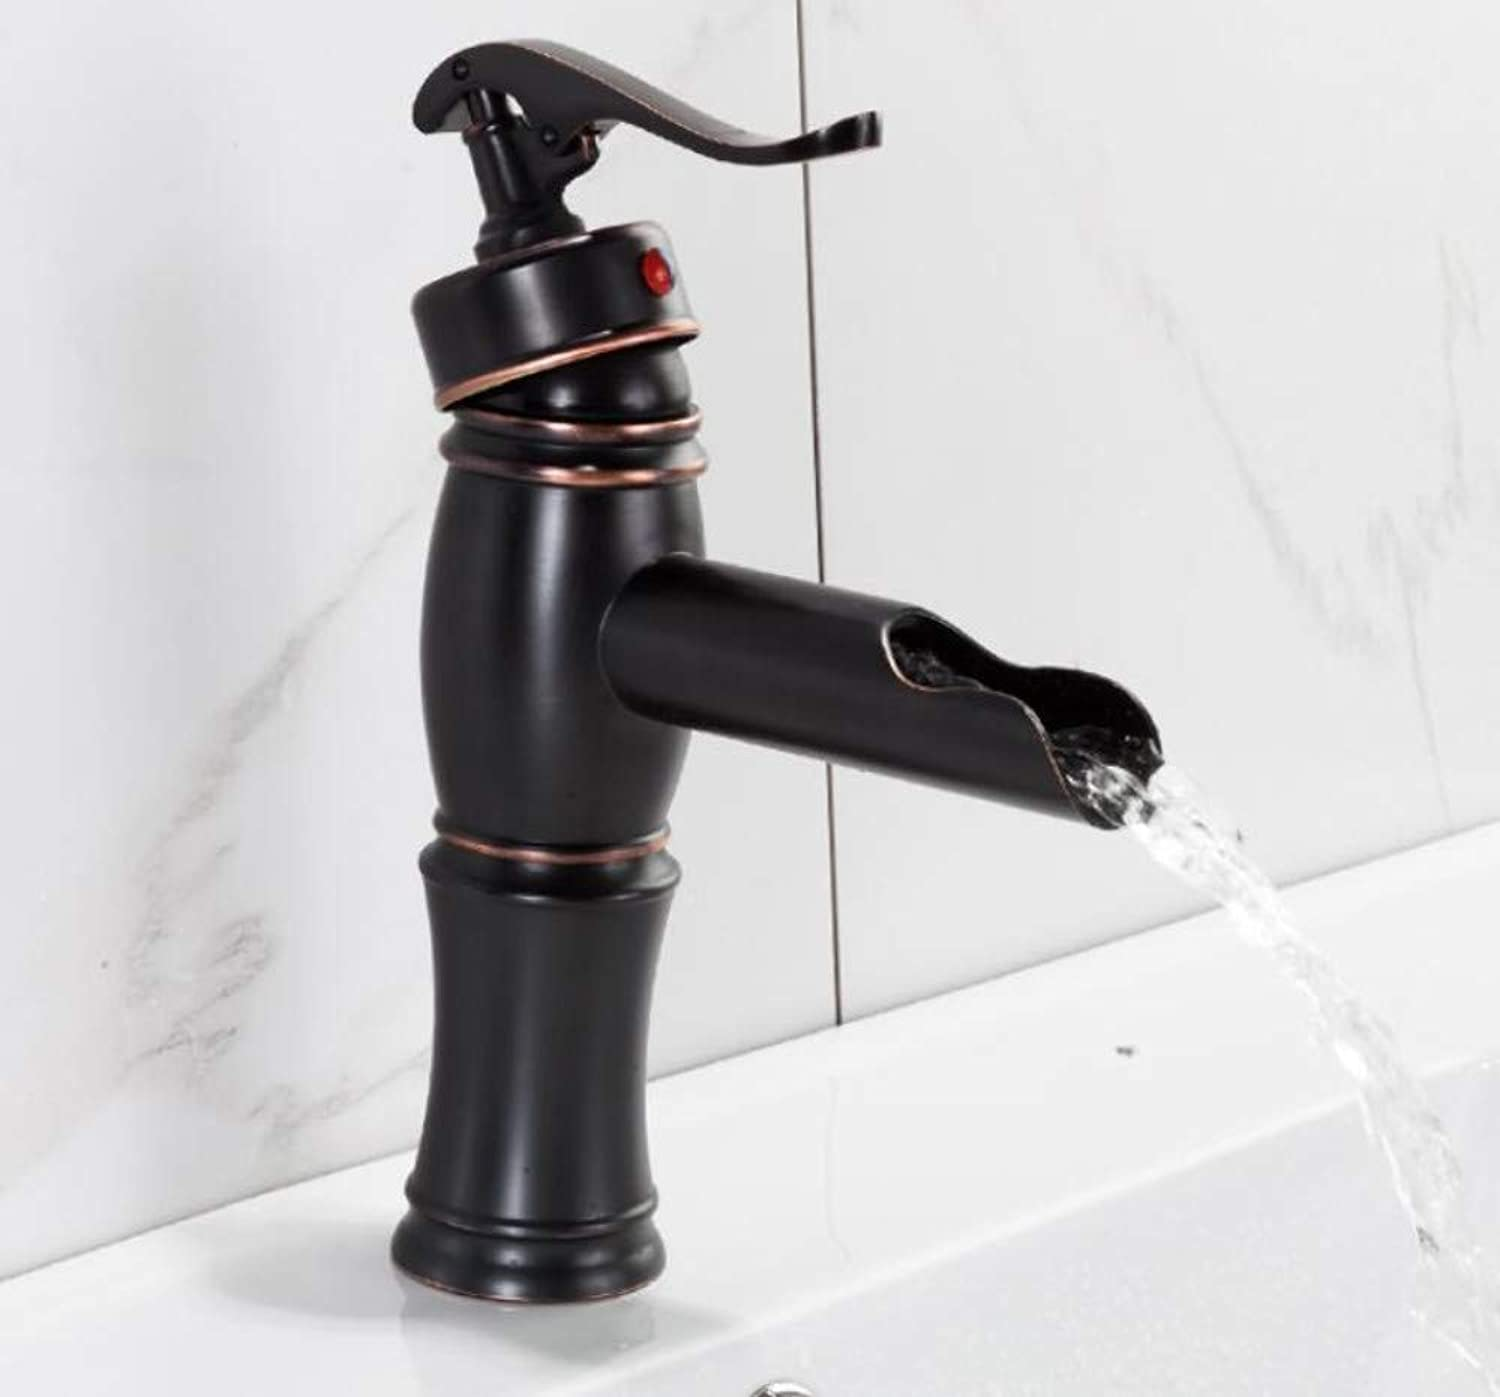 Bathroom Faucet Basin Faucets Black Waterfall Bathroom Faucet Water Taps Basin Sink Faucet Taps Mixers Deck Mounted